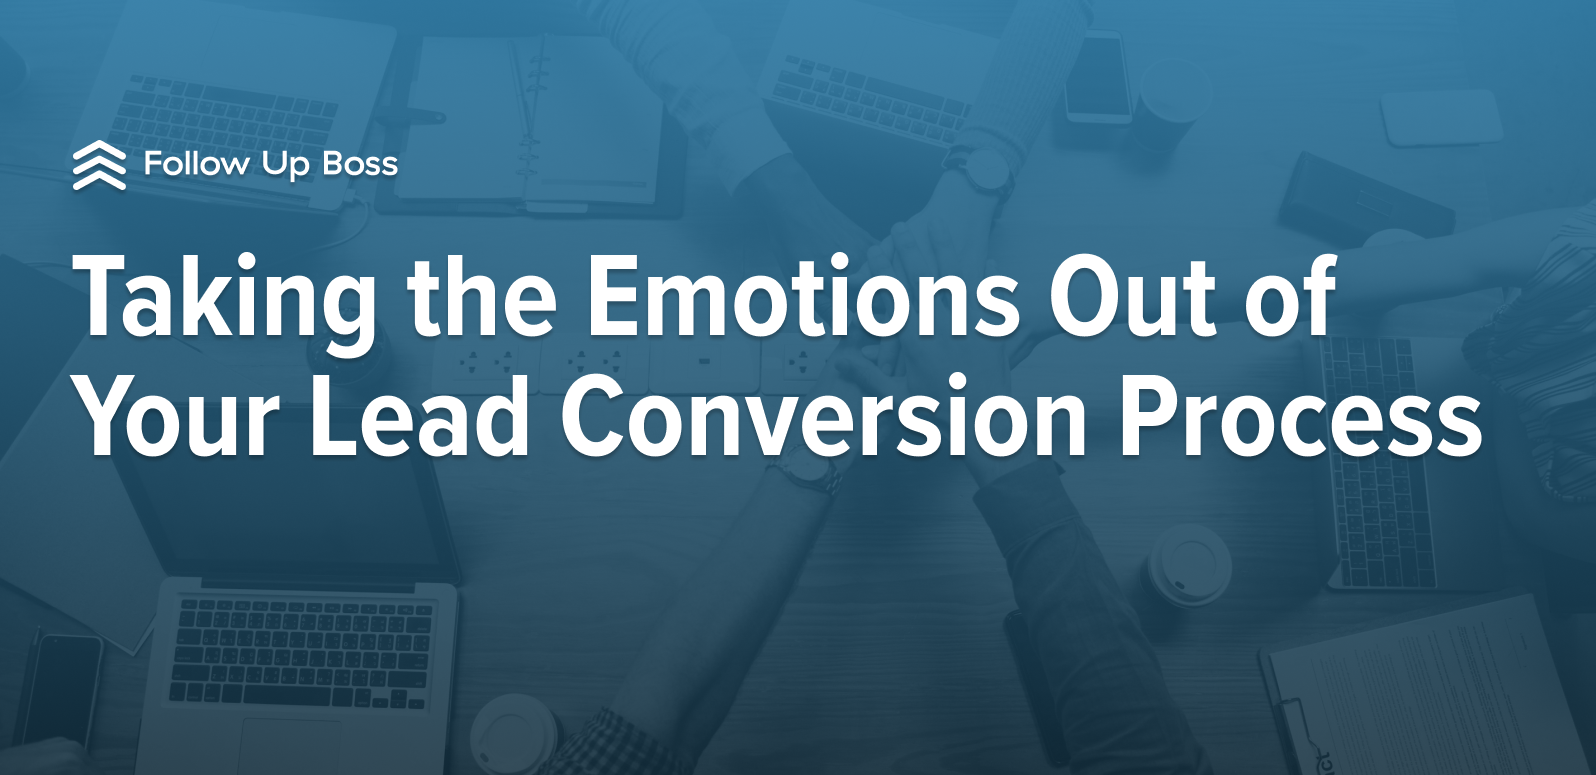 Taking the Emotions Out of Your Lead Conversion Process